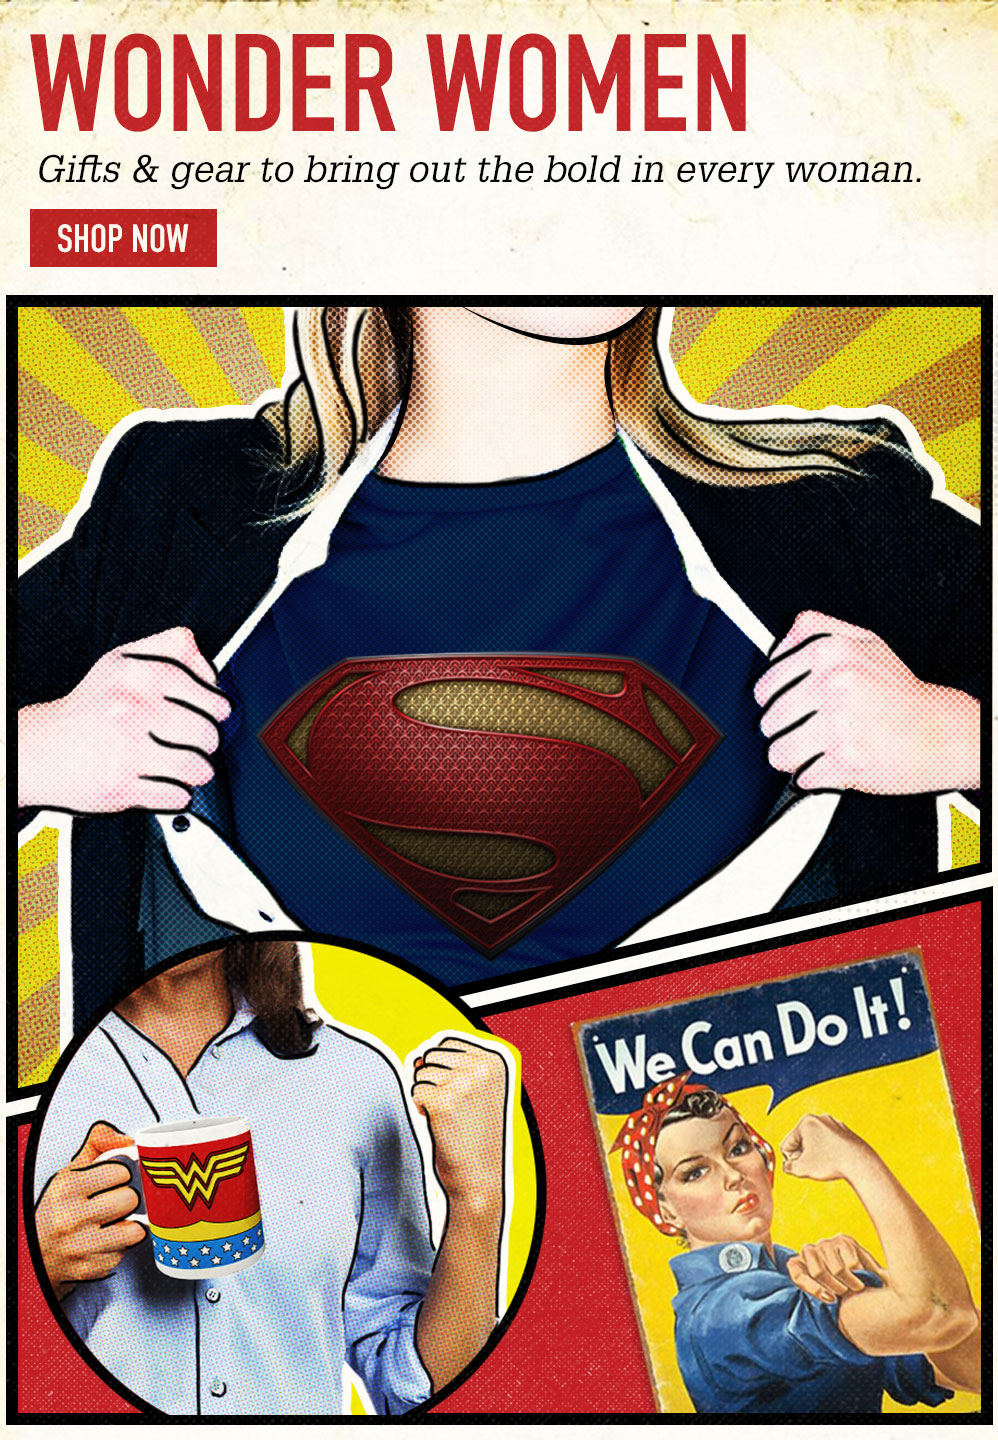 WONDER WOMEN. Gifts & gear to bring out the bold in every woman. SHOP NOW